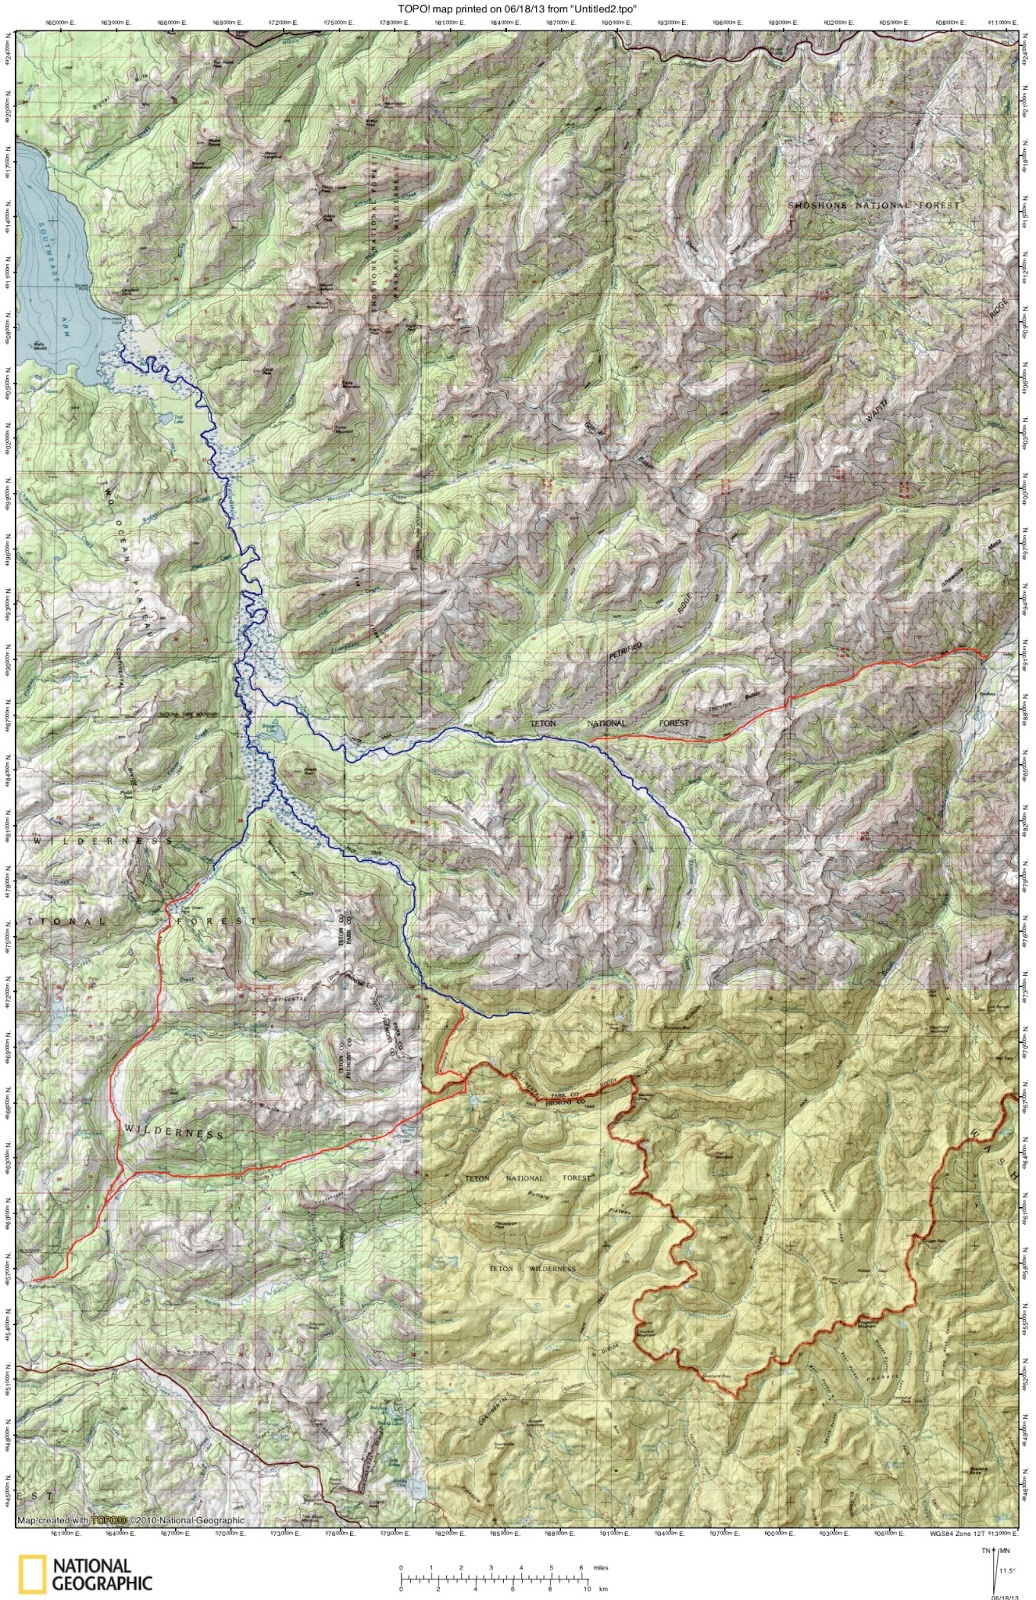 Packrafting guide to yellowstone national park forrest mccarthy southeast arm of yellowstone lake also leads over the continental divide to heart lake as discussed later the upper yellowstone river would provide an sciox Image collections